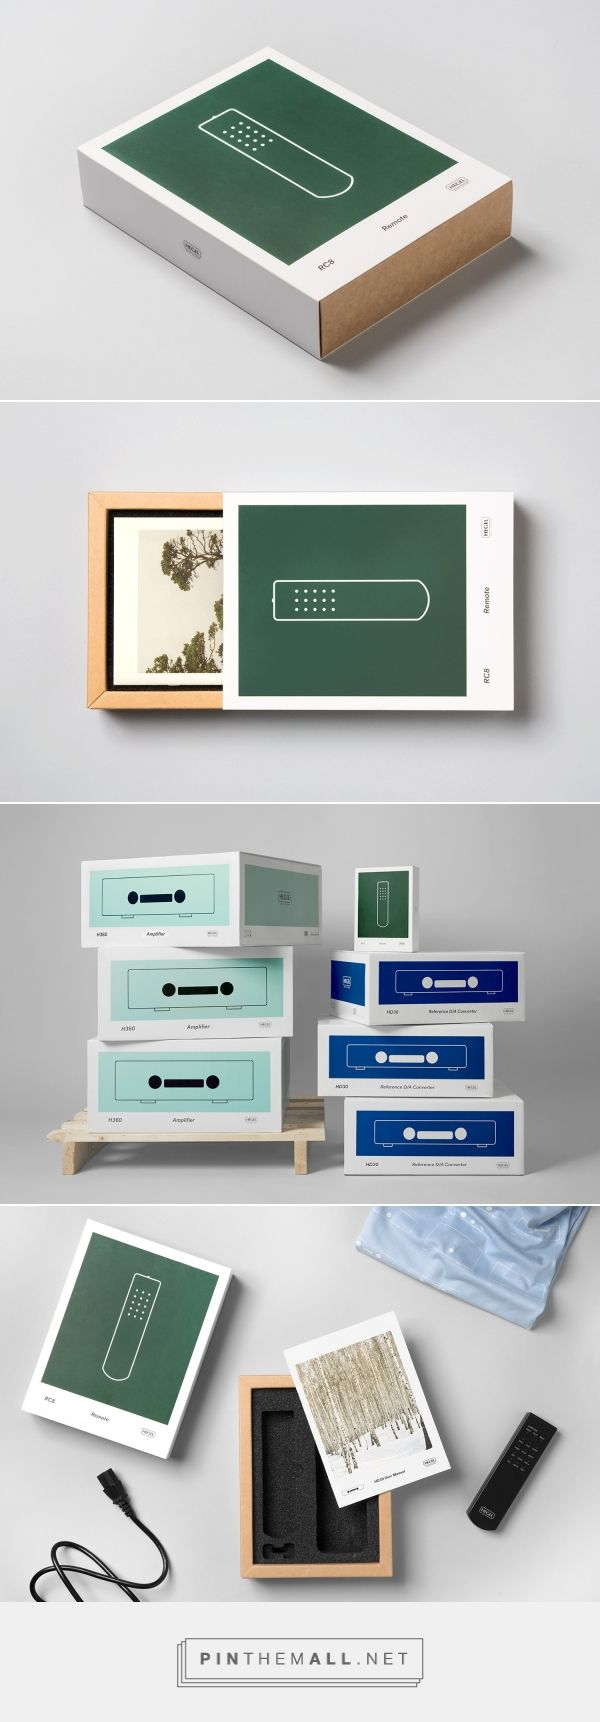 New Packaging for Hegel Music Systems by Neue — BP&O - created via https://pinthemall.net